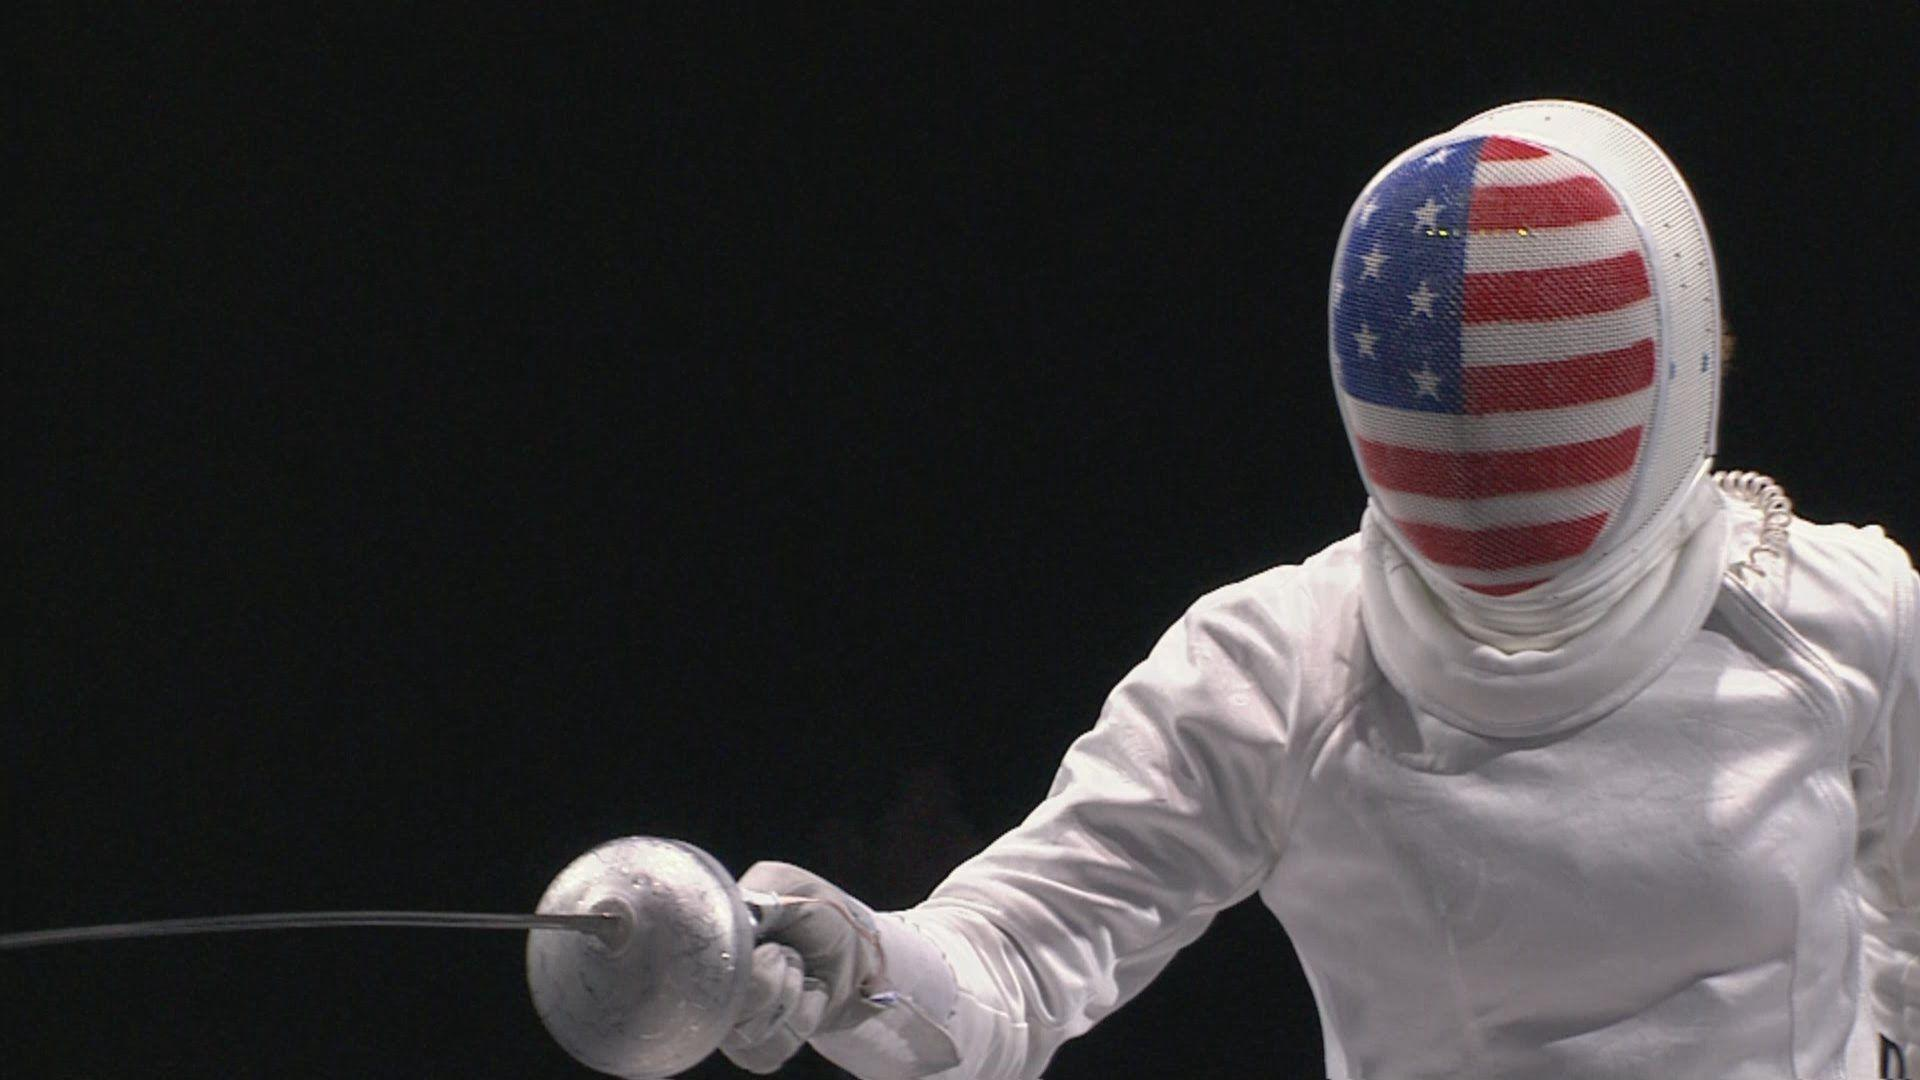 Epee sports wallpaper - HD Wallpapers